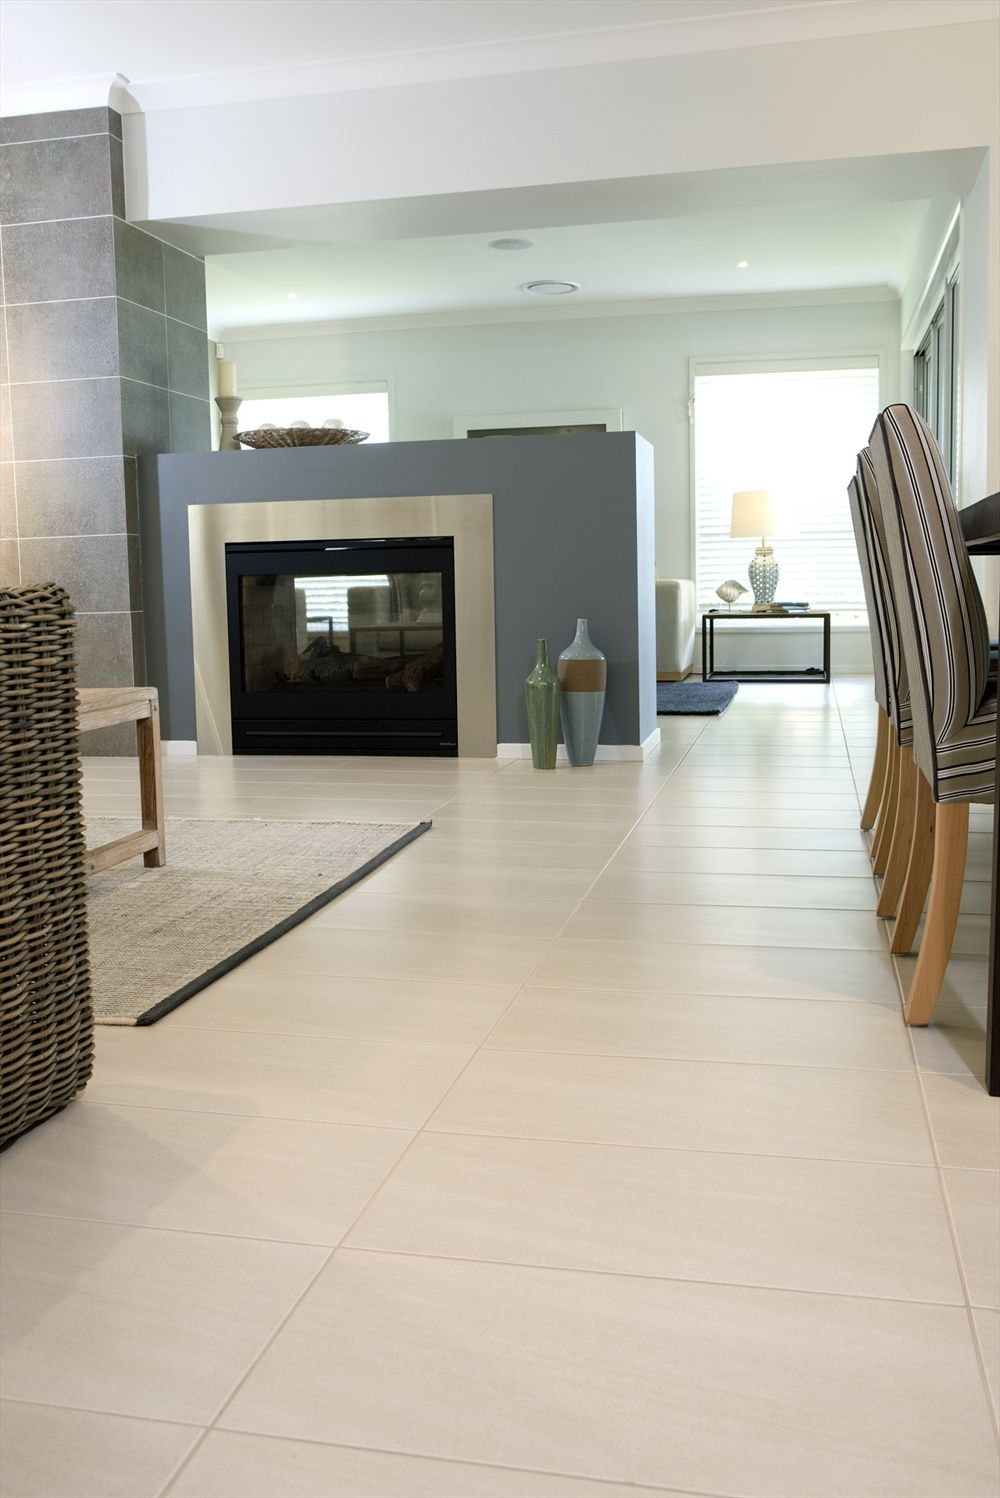 What Do You Think Of This Living Rooms Tile Idea I Got From Beaumont Tiles Check Out More Ideas